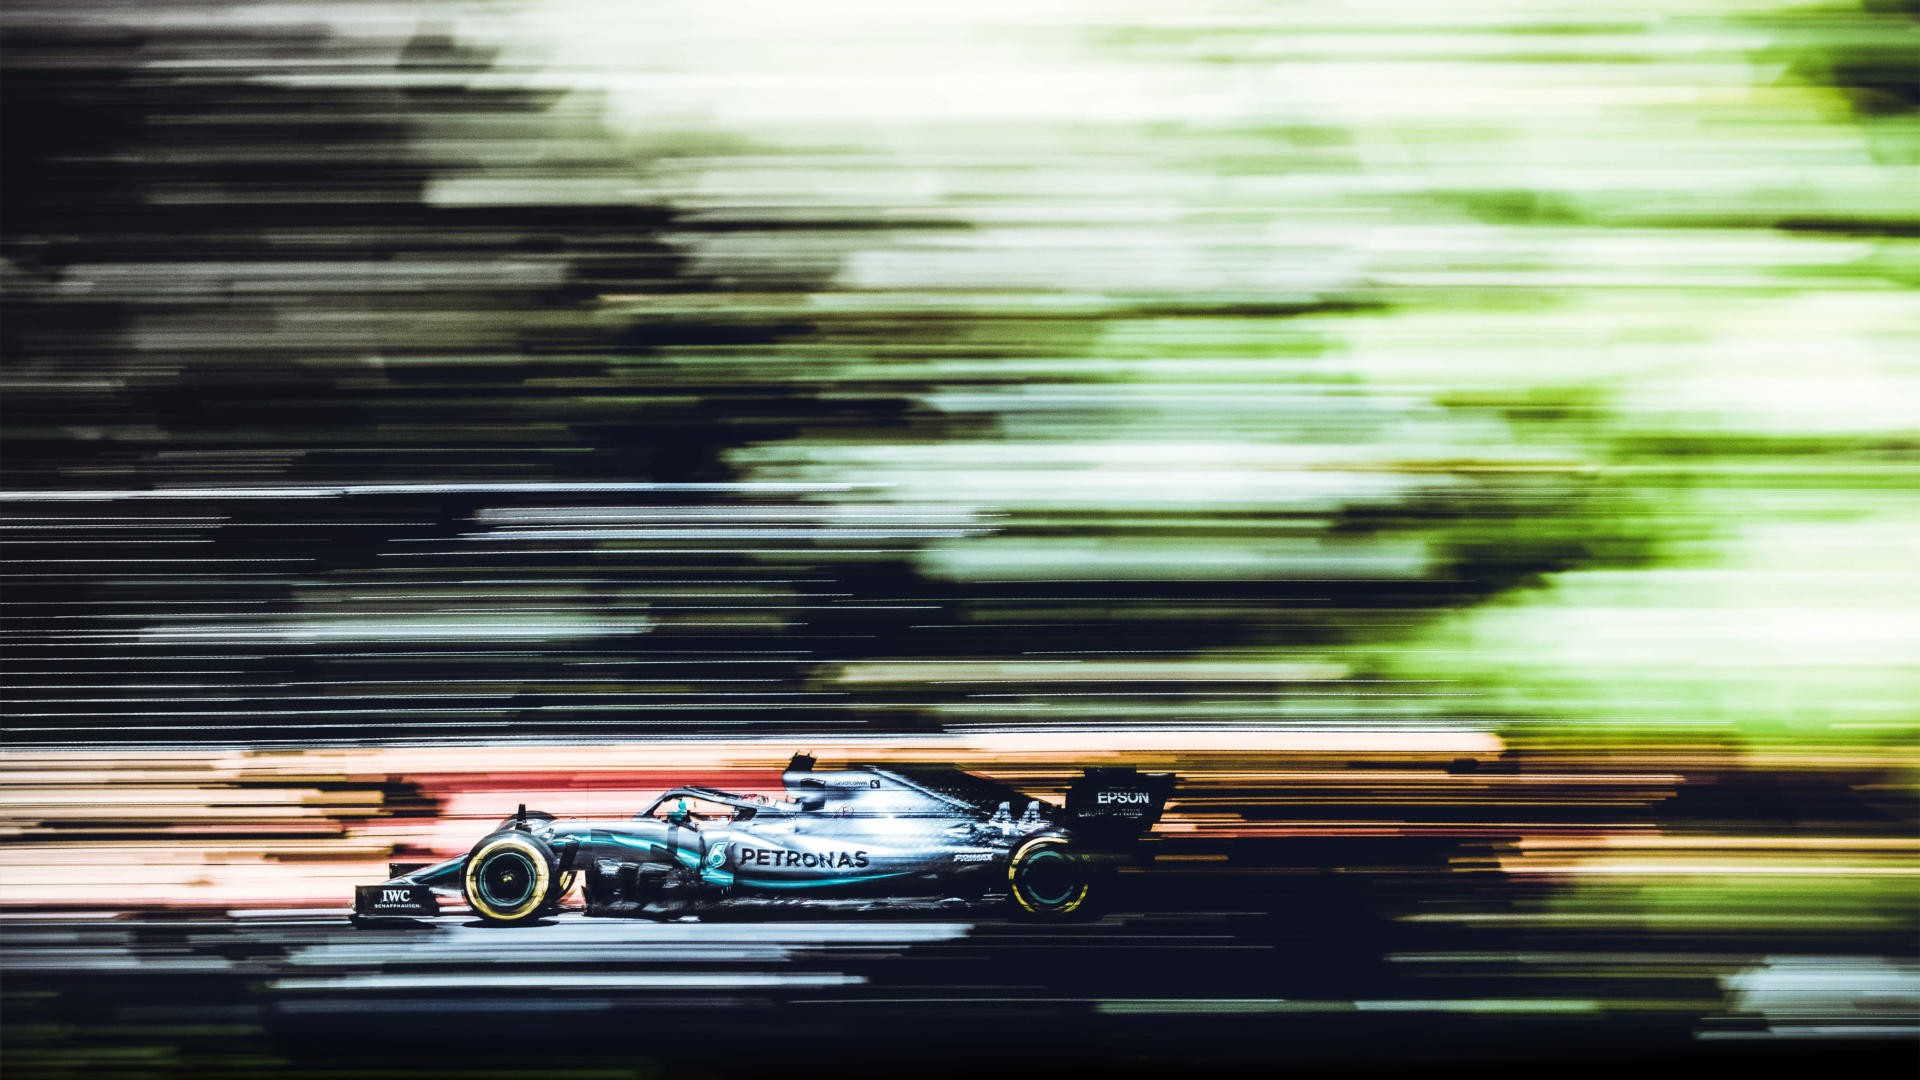 F1 Racing Wallpaper